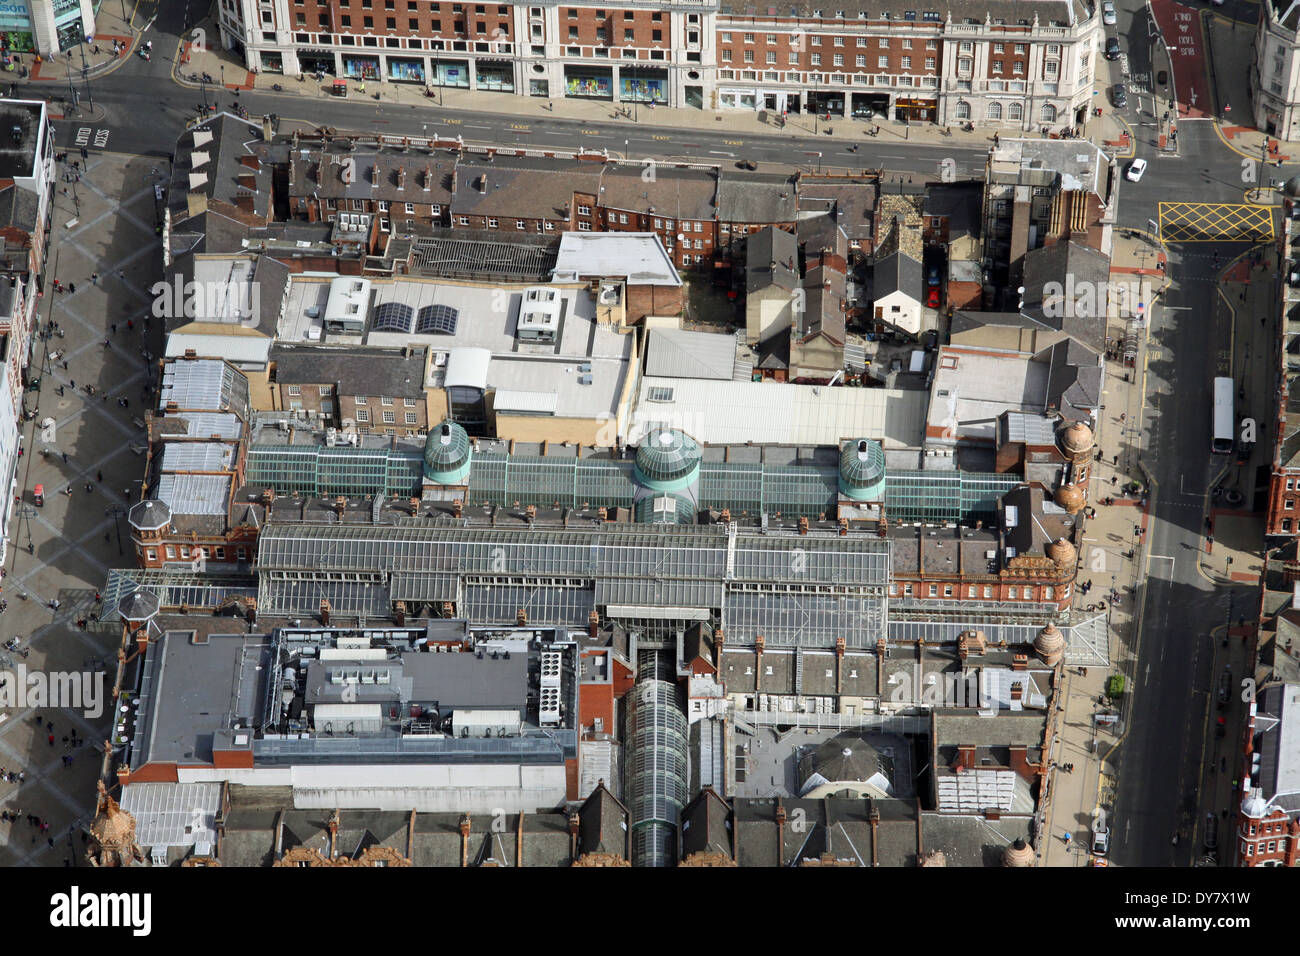 aerial view of the Victorian Quarter of Leeds with County Arcade and Thornton's Arcade which run between Briggate & Vicar Lane - Stock Image